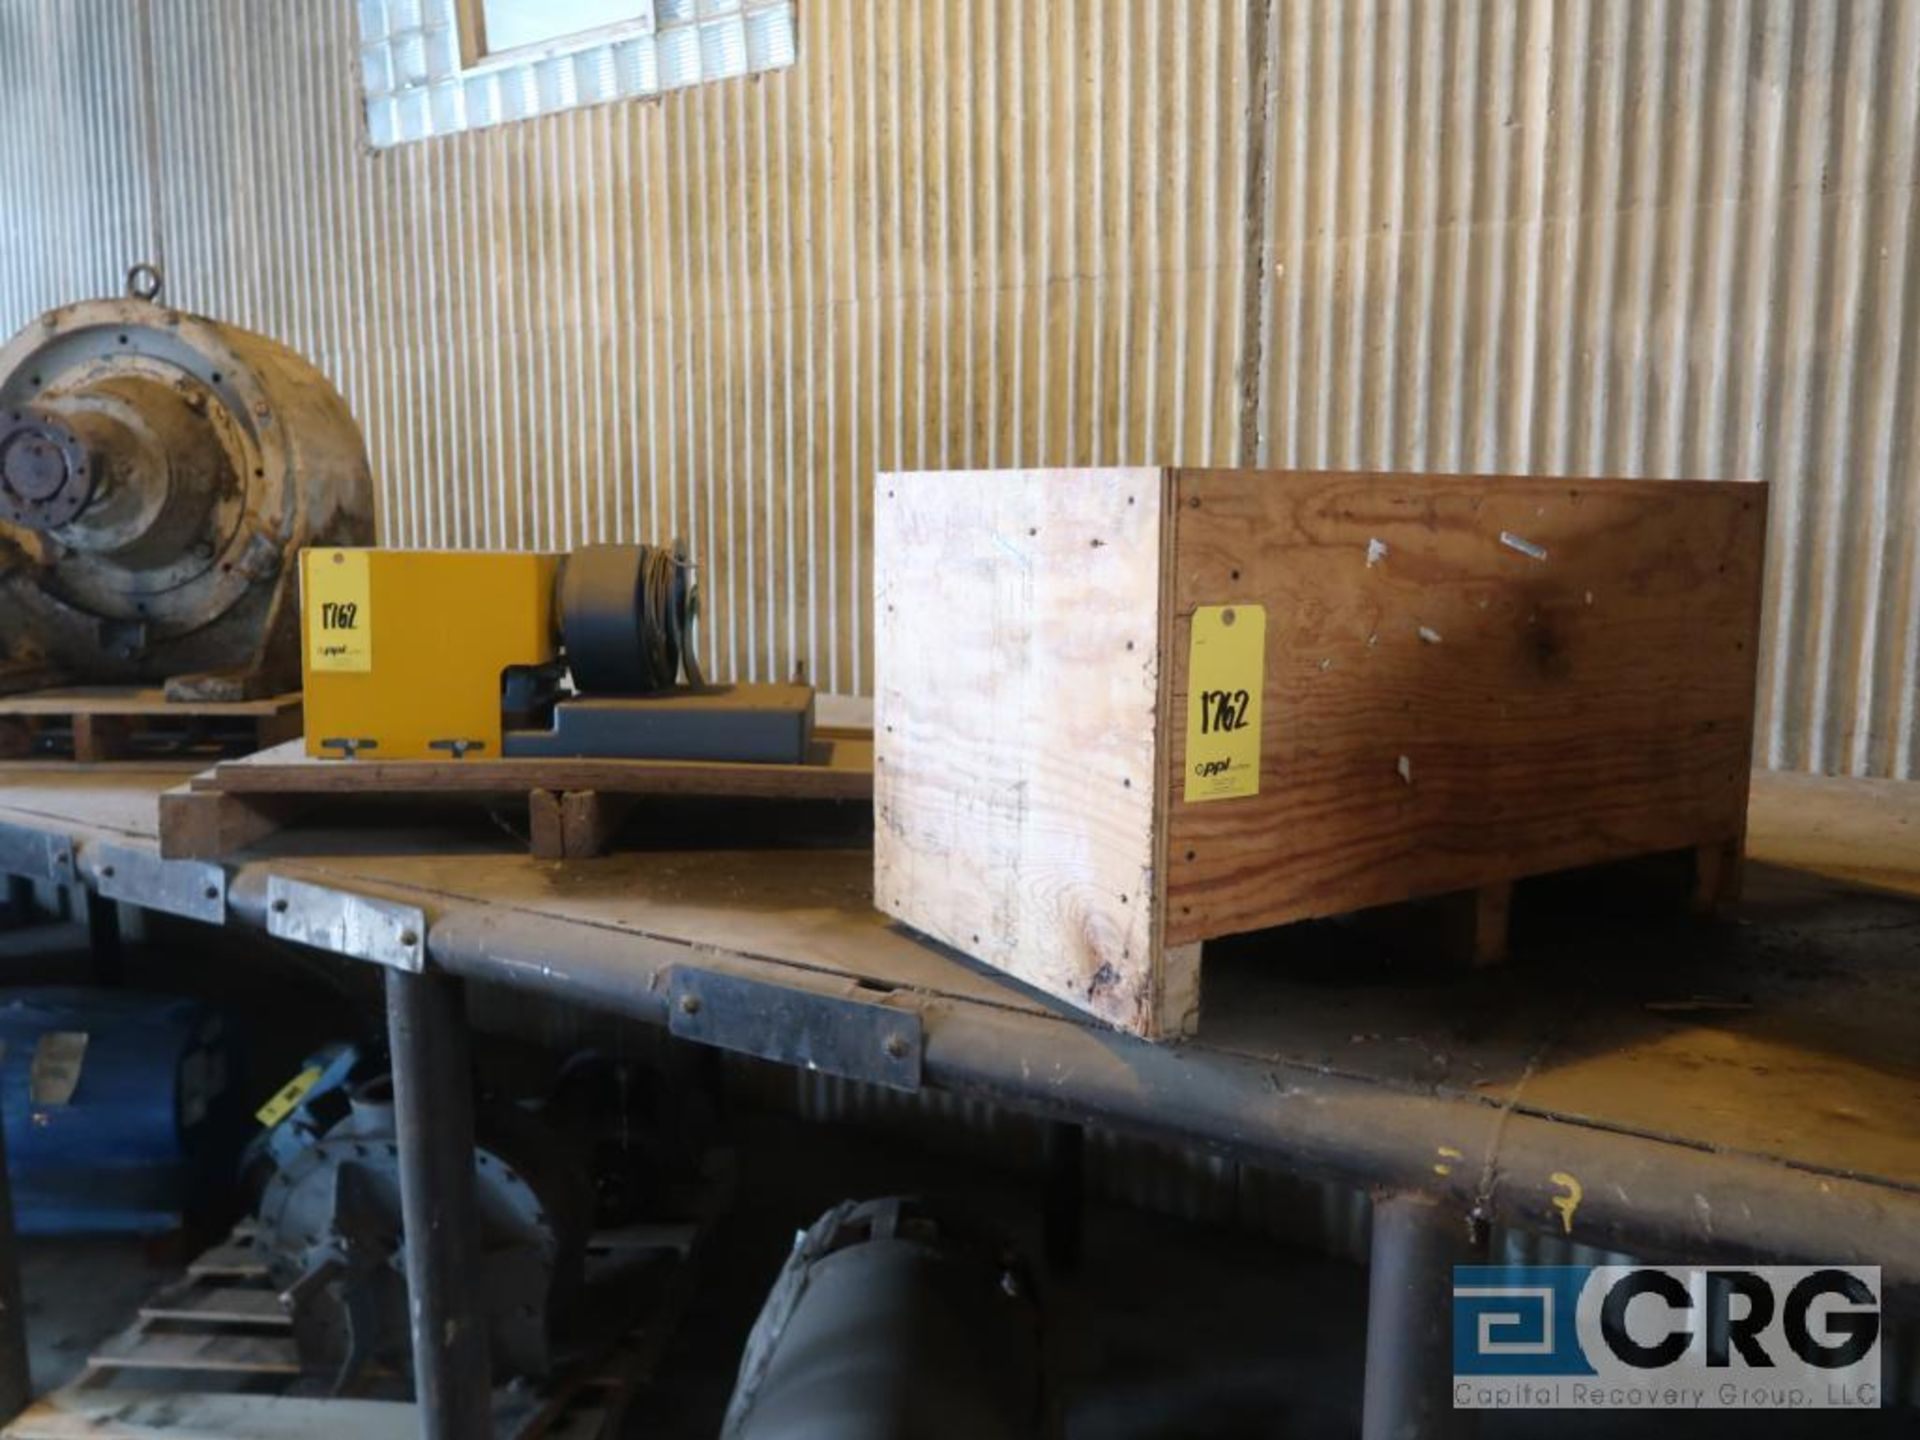 Lot of assorted motor, gear bearing housing, gear drive on metal rack (Next Bay Cage Area) - Image 5 of 16